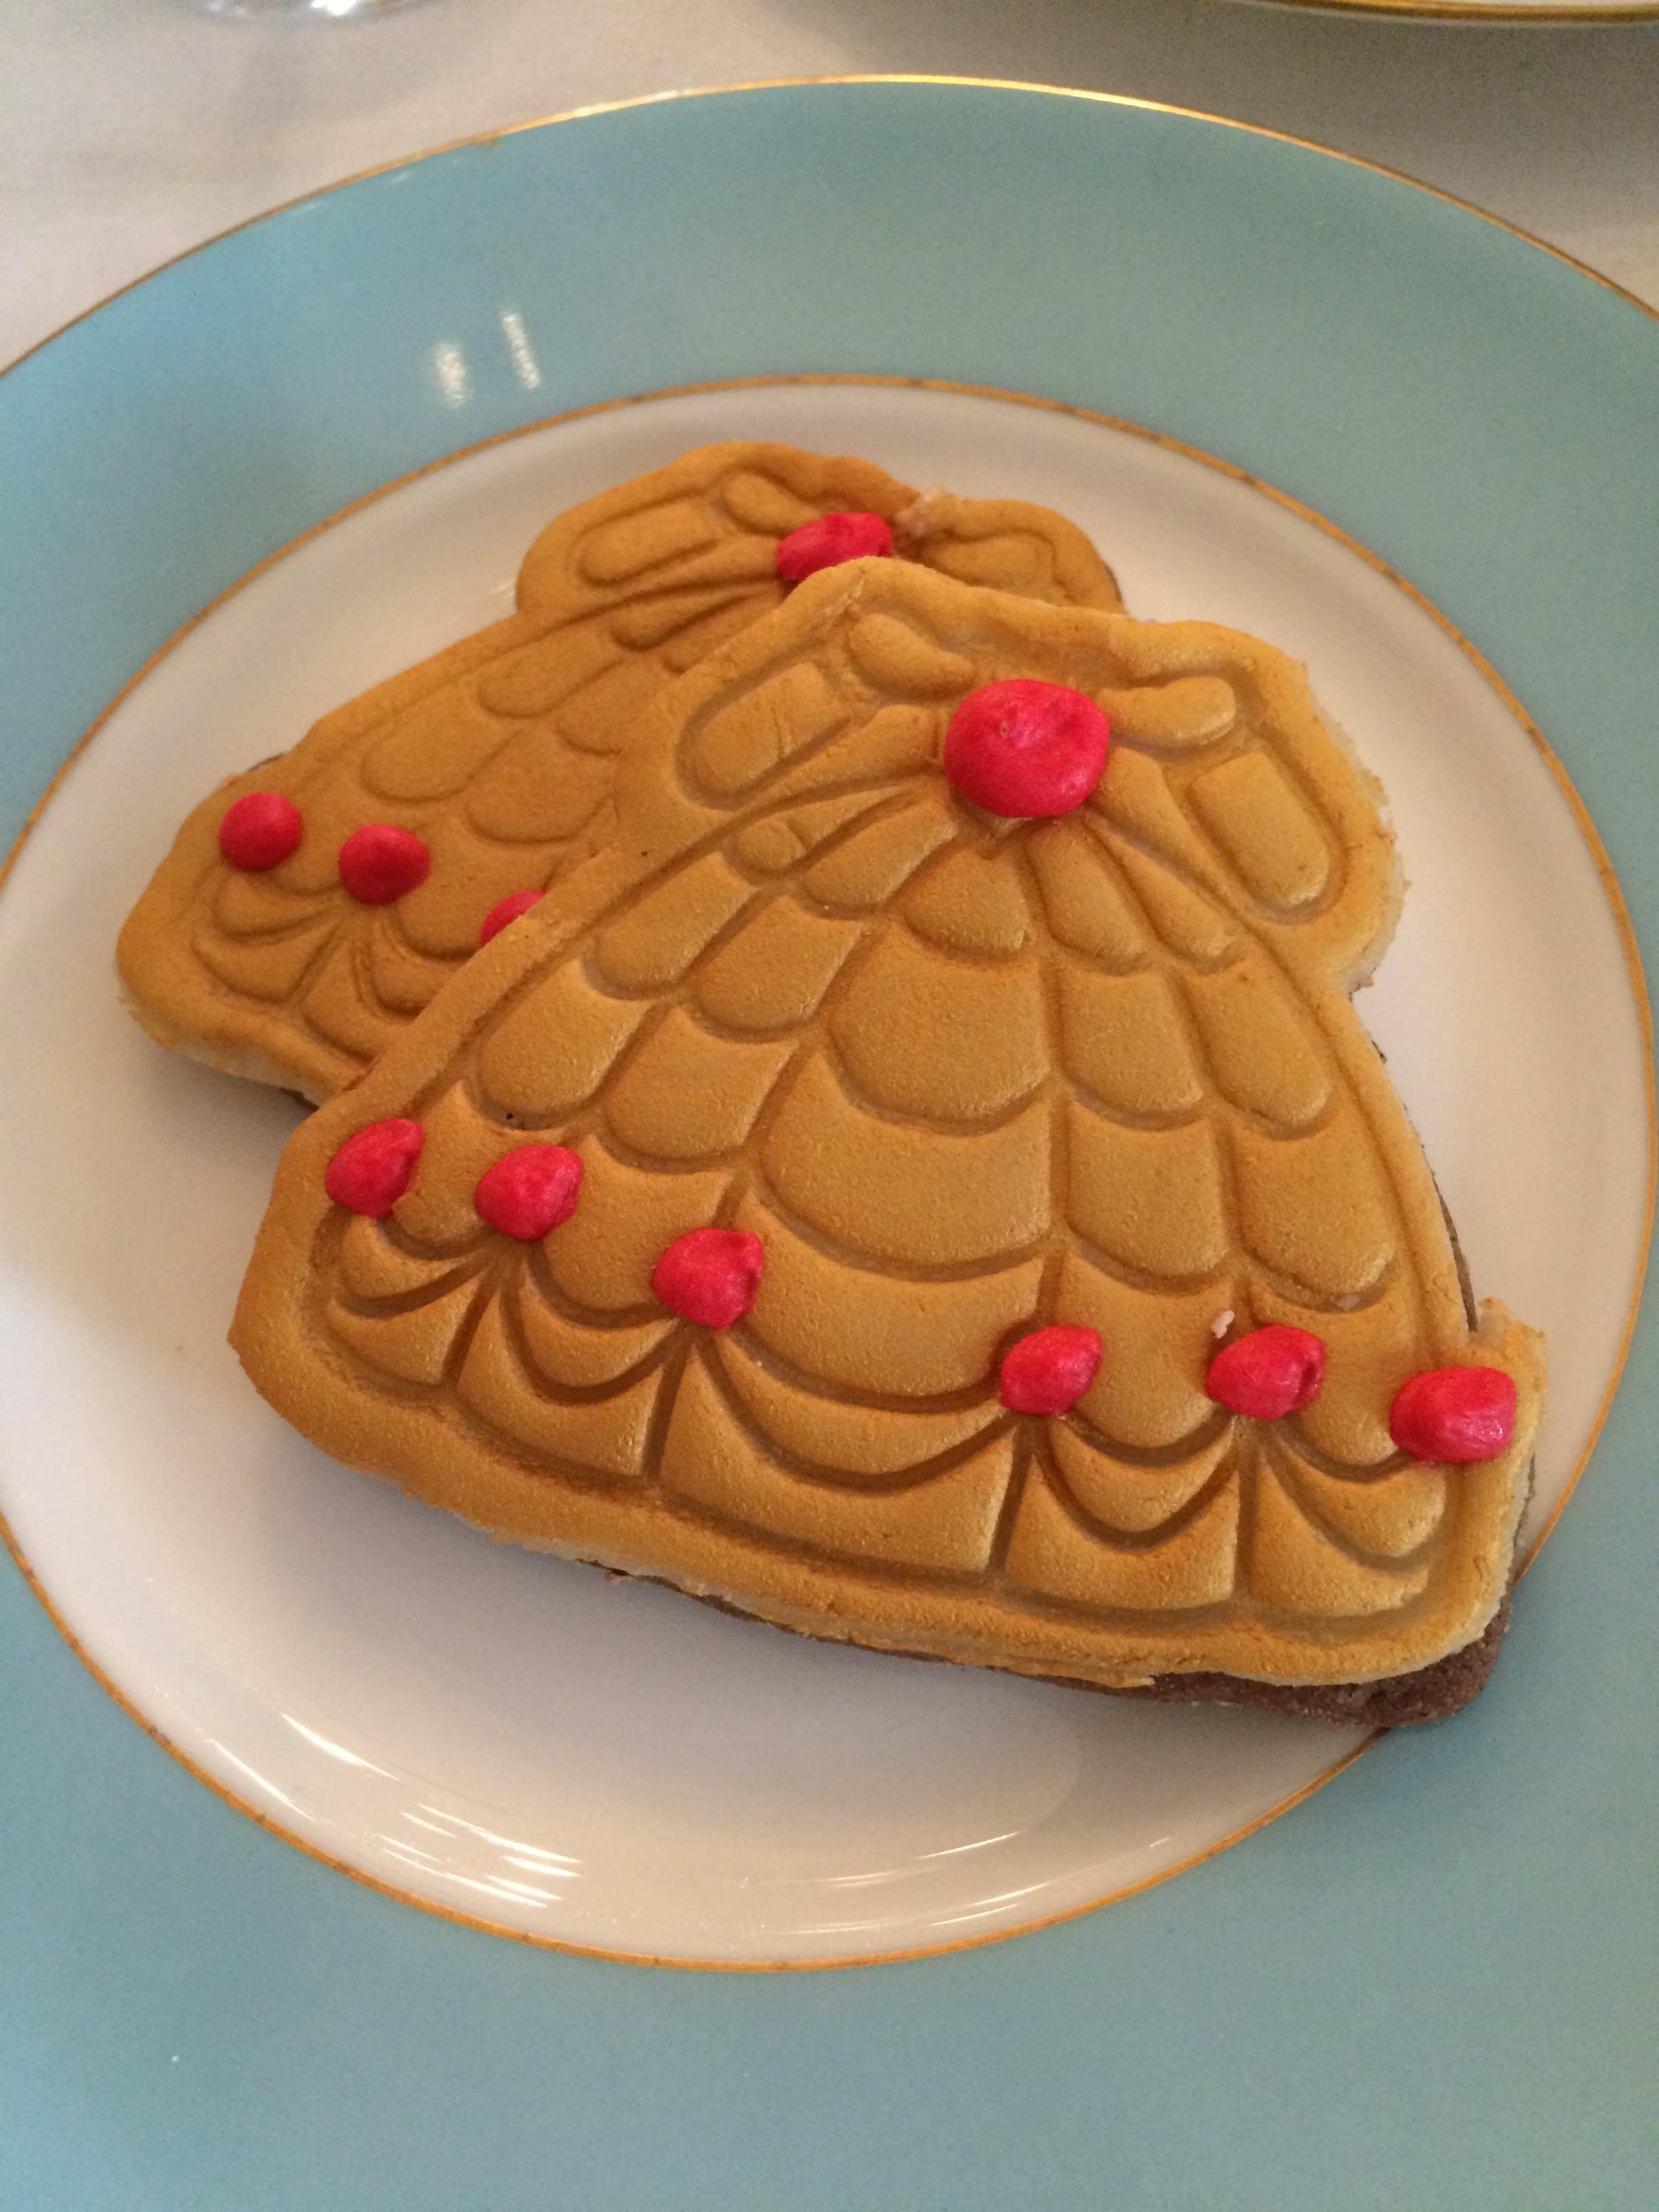 Belle's dress as a biscuit